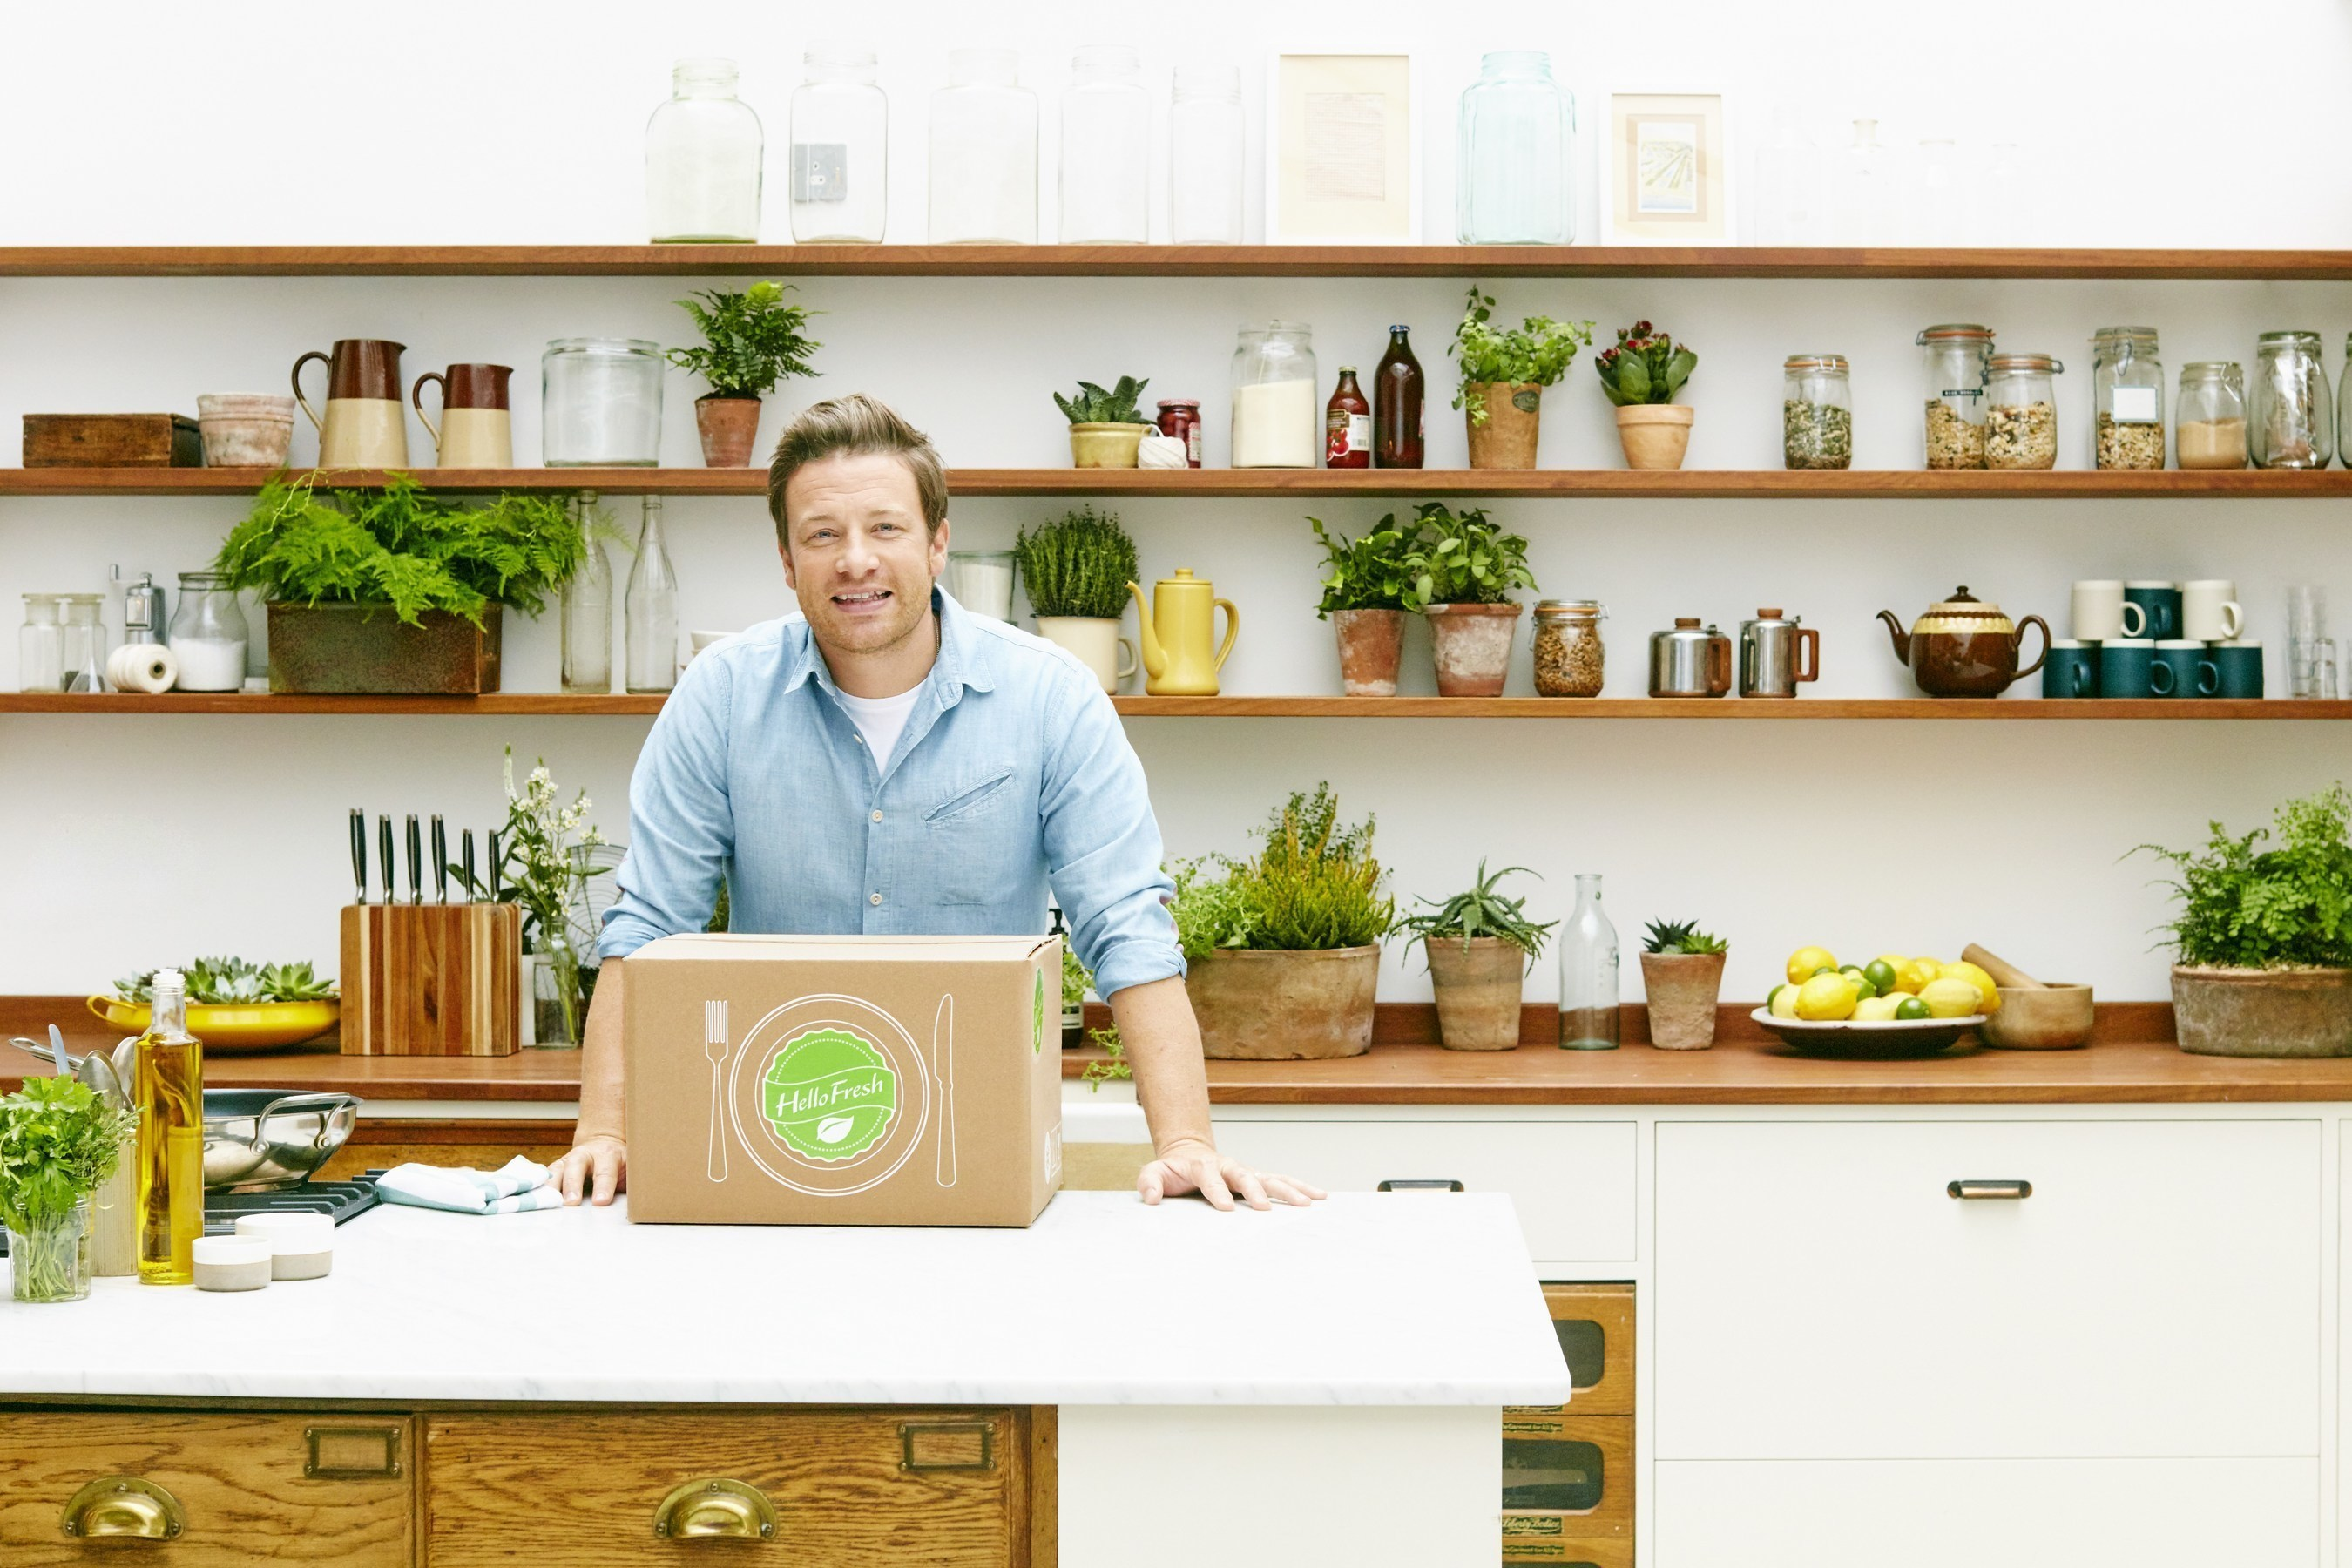 Jamie Oliver Limited and the international meal kit delivery brand HelloFresh have teamed up to make it even easier for people to cook delicious, nutritious food from scratch in their own homes.